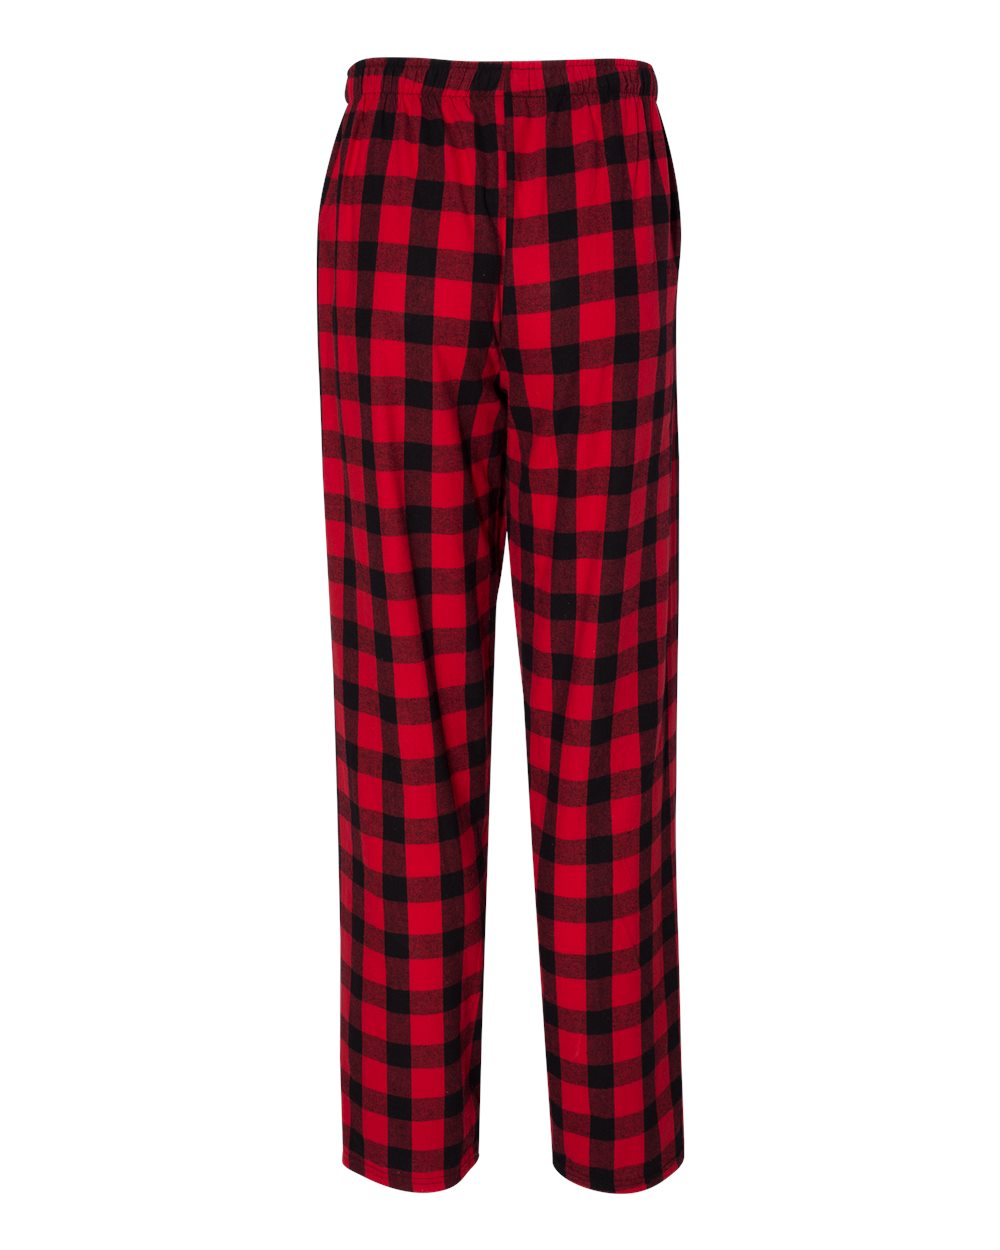 Boxercraft-Unisex-Flannel-Pants-With-Pockets-Pajama-Pants-F20-up-to-2XL thumbnail 40